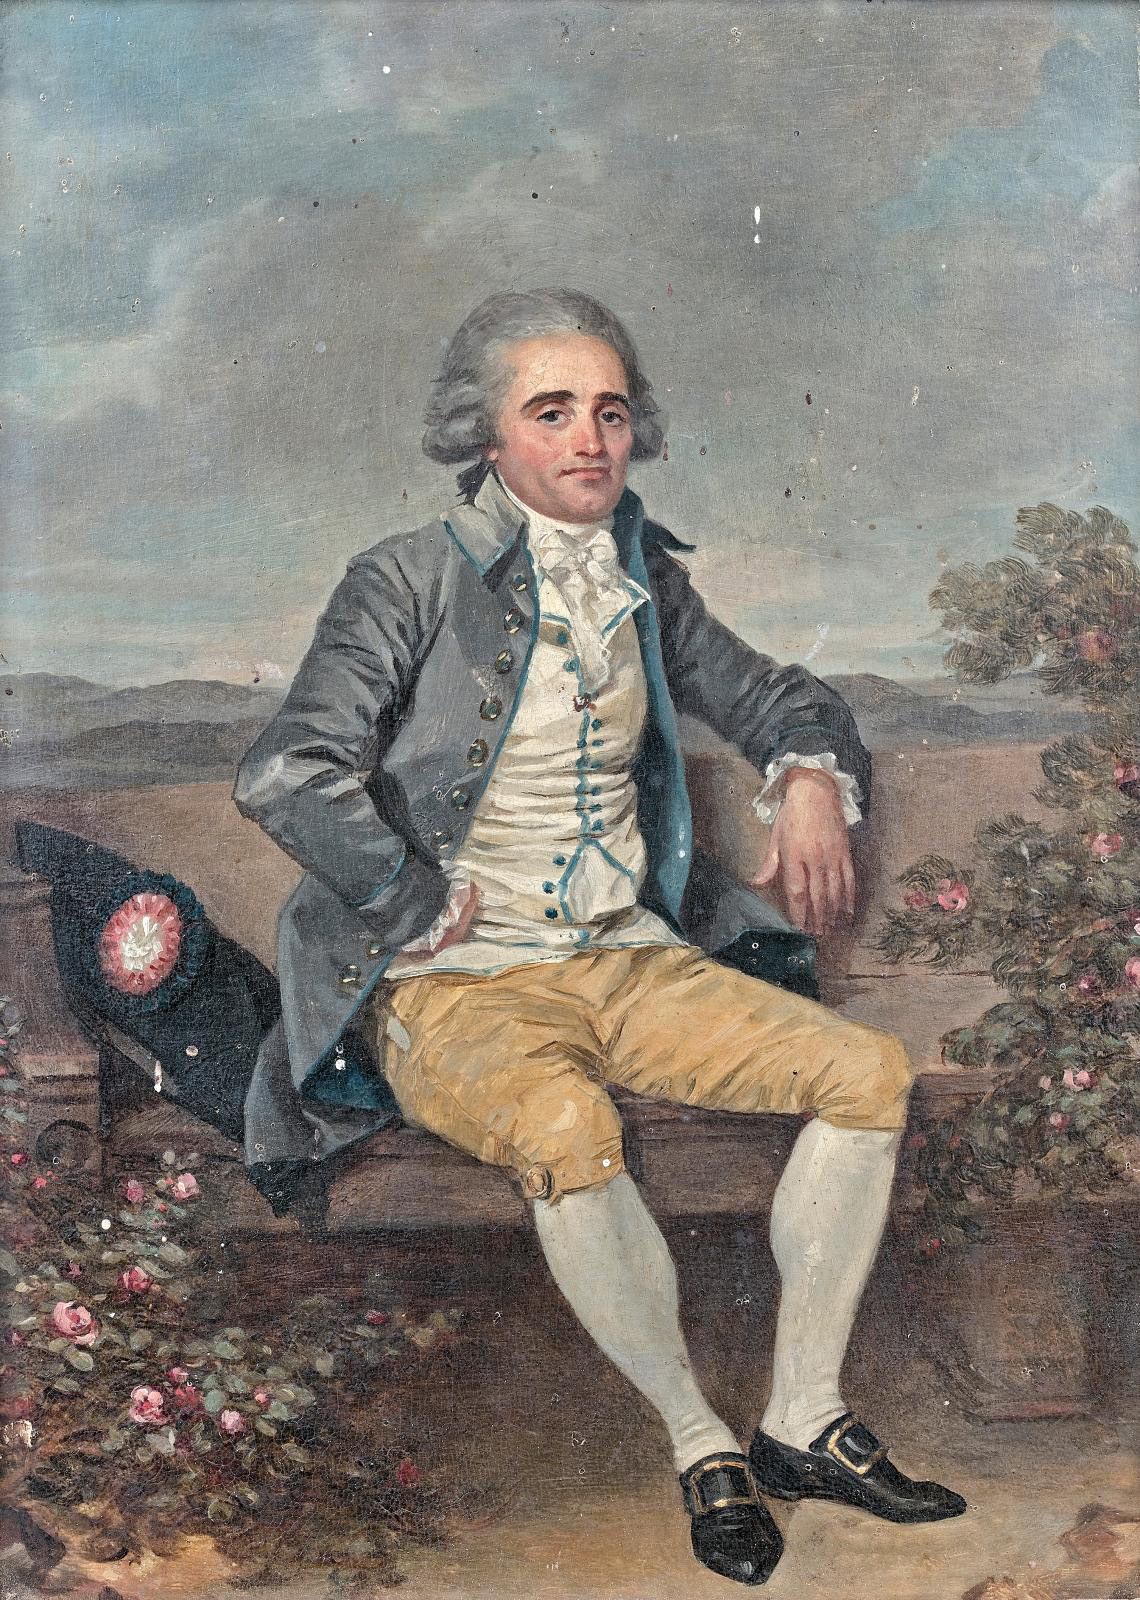 Marguerite Gérard (1761-1837), Portrait of a Man Sitting on a Bench, oil on walnut panel, making a pair with Presumed Portraits of Marguer